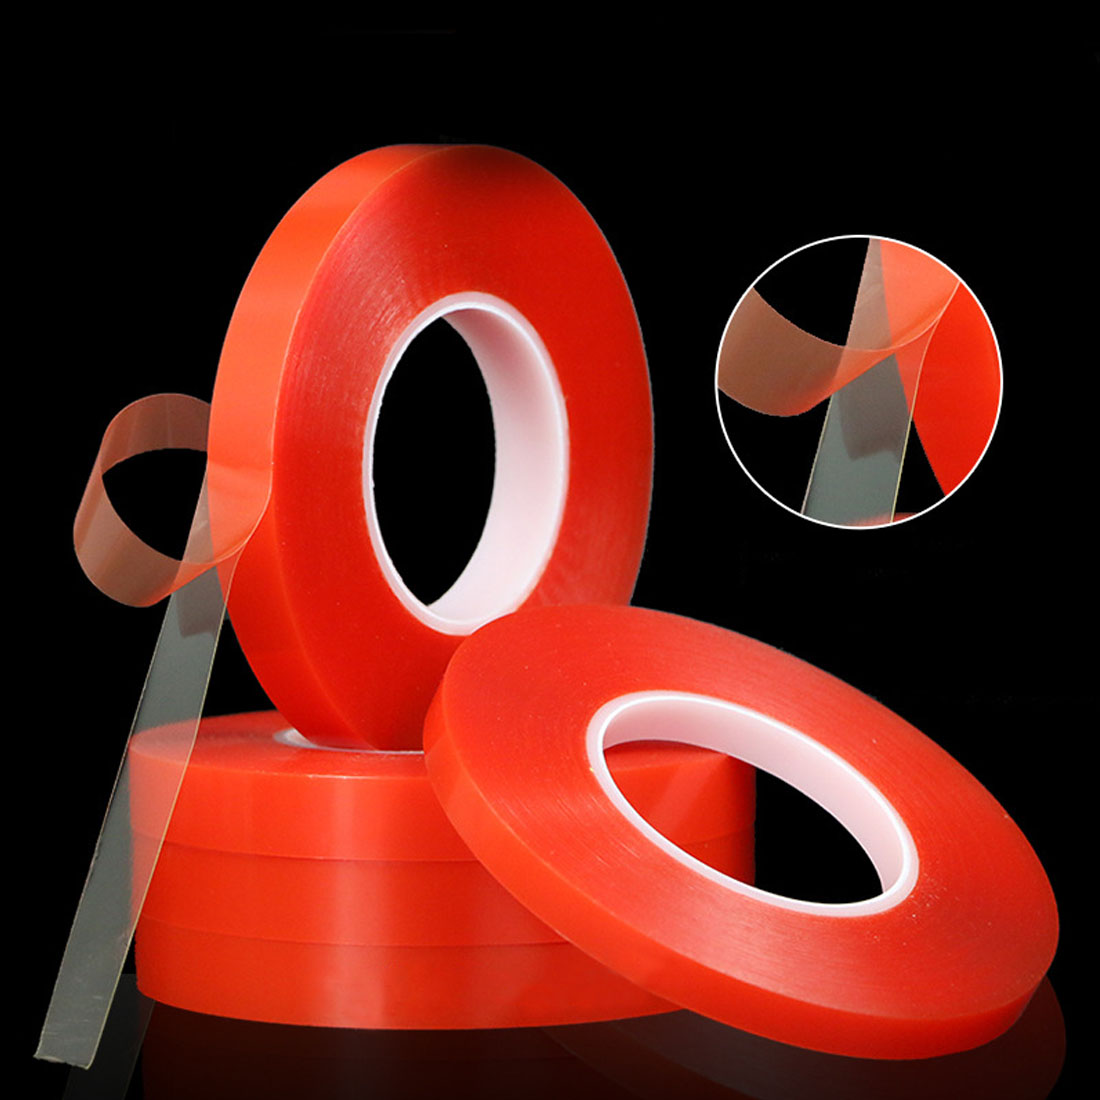 2mm 50M Double Sided Tape Strong Acrylic Adhesive Red Film Clear Sticker for Mobile Phone LCD Pannel Display Screen Repair Tool image